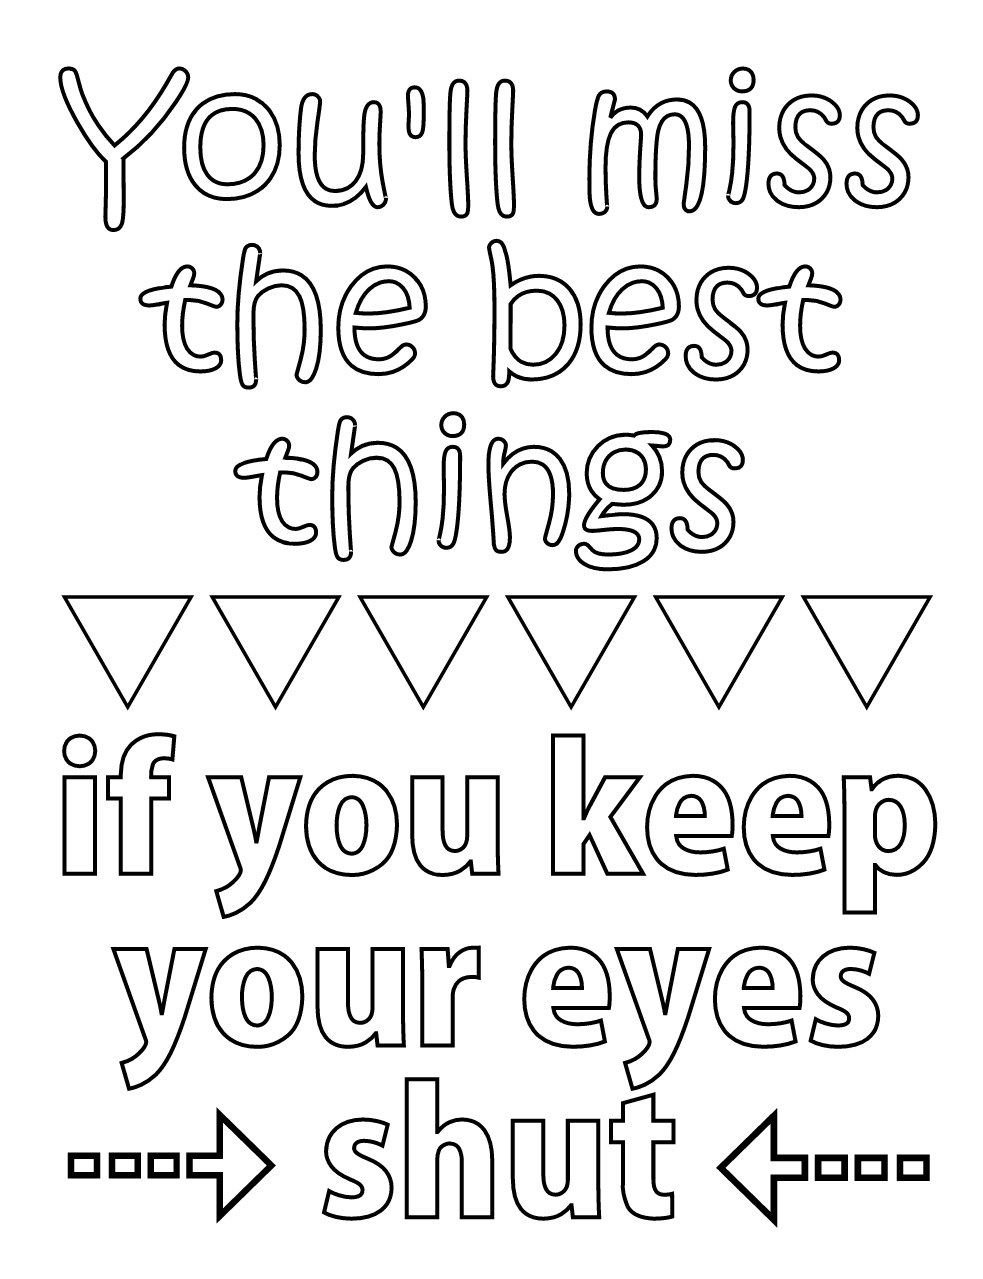 youll miss the best things if you keep your eyes shut - Quote Coloring Pages